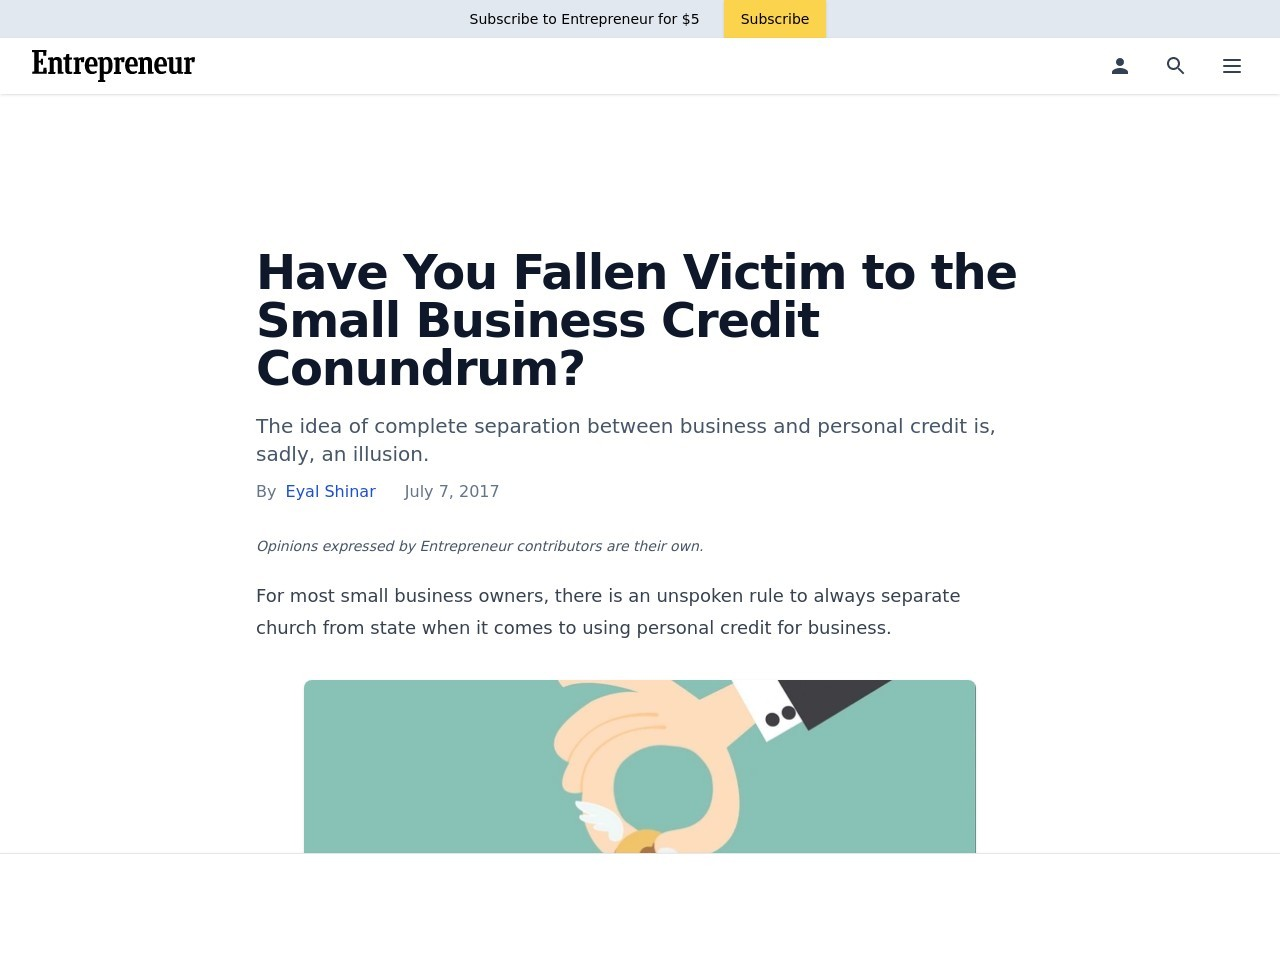 Have You Fallen Victim to the Small Business Credit Conundrum?